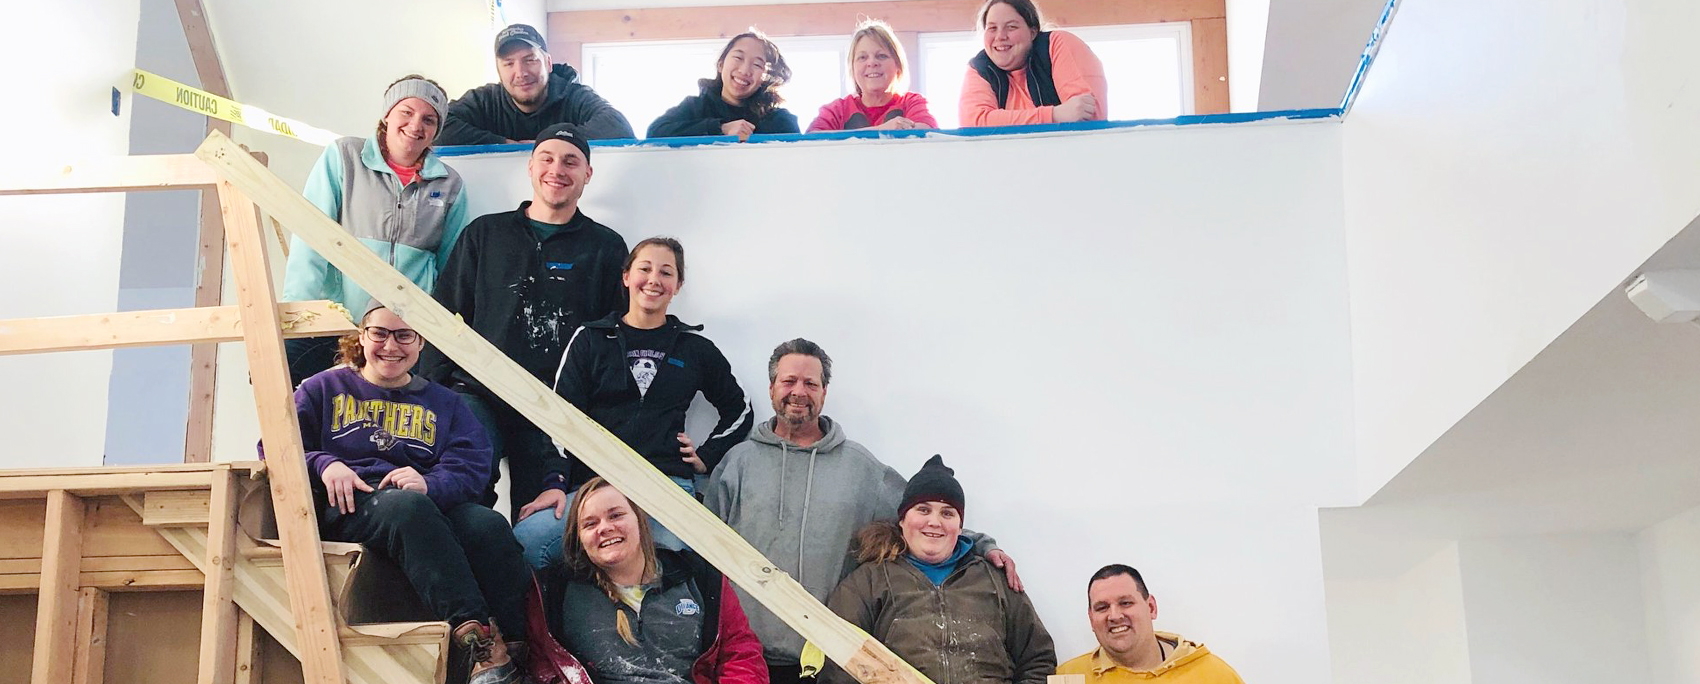 12 individuals in various colors of jackets and hoodies all smiling and standing on stairs and an upstairs landing in a home construction.